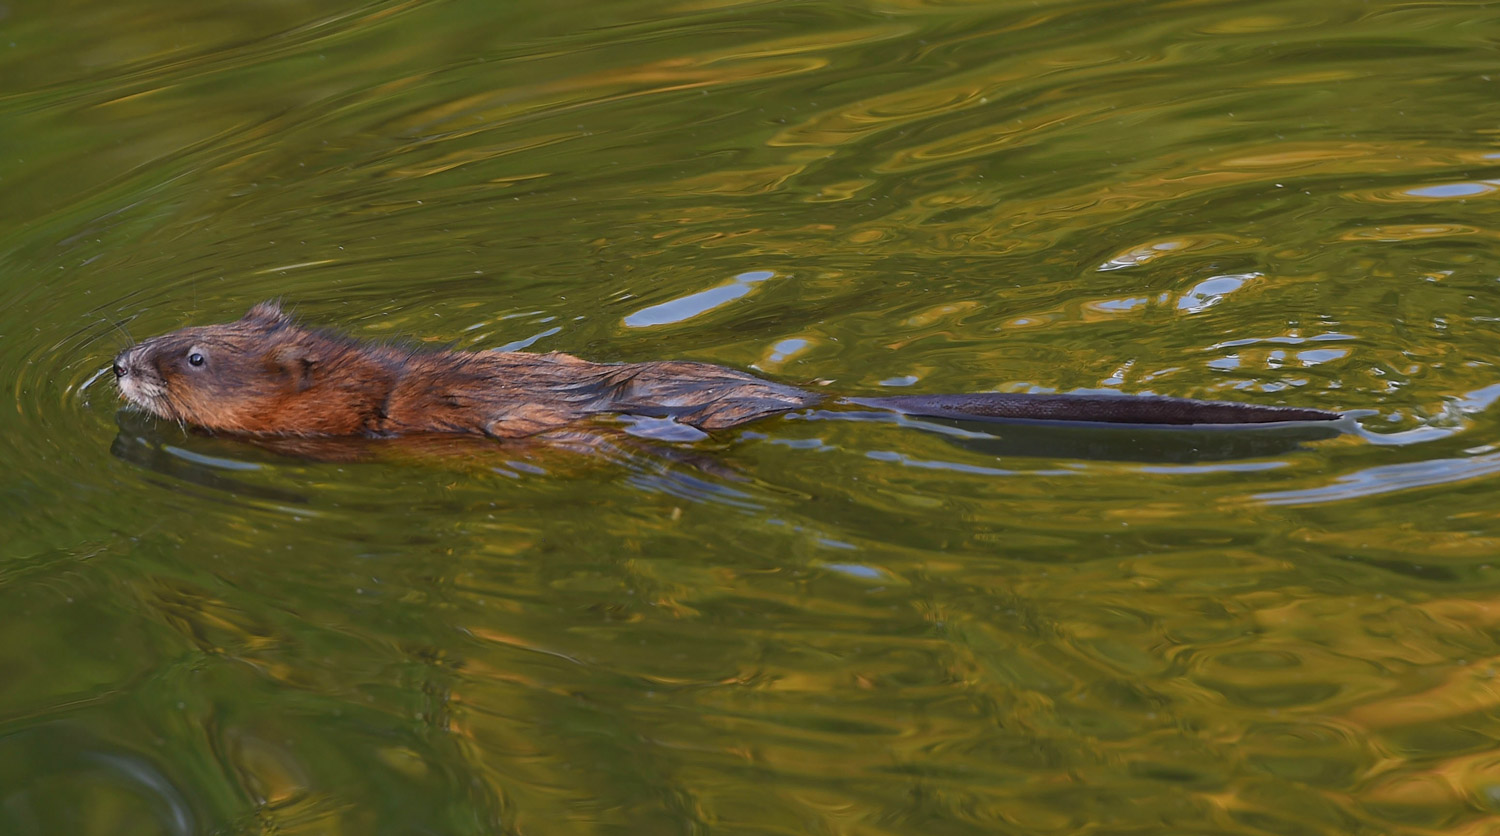 A beaver swims in the pond on the 12th hole during the first round of the 2015 Winco Foods Portland Open.